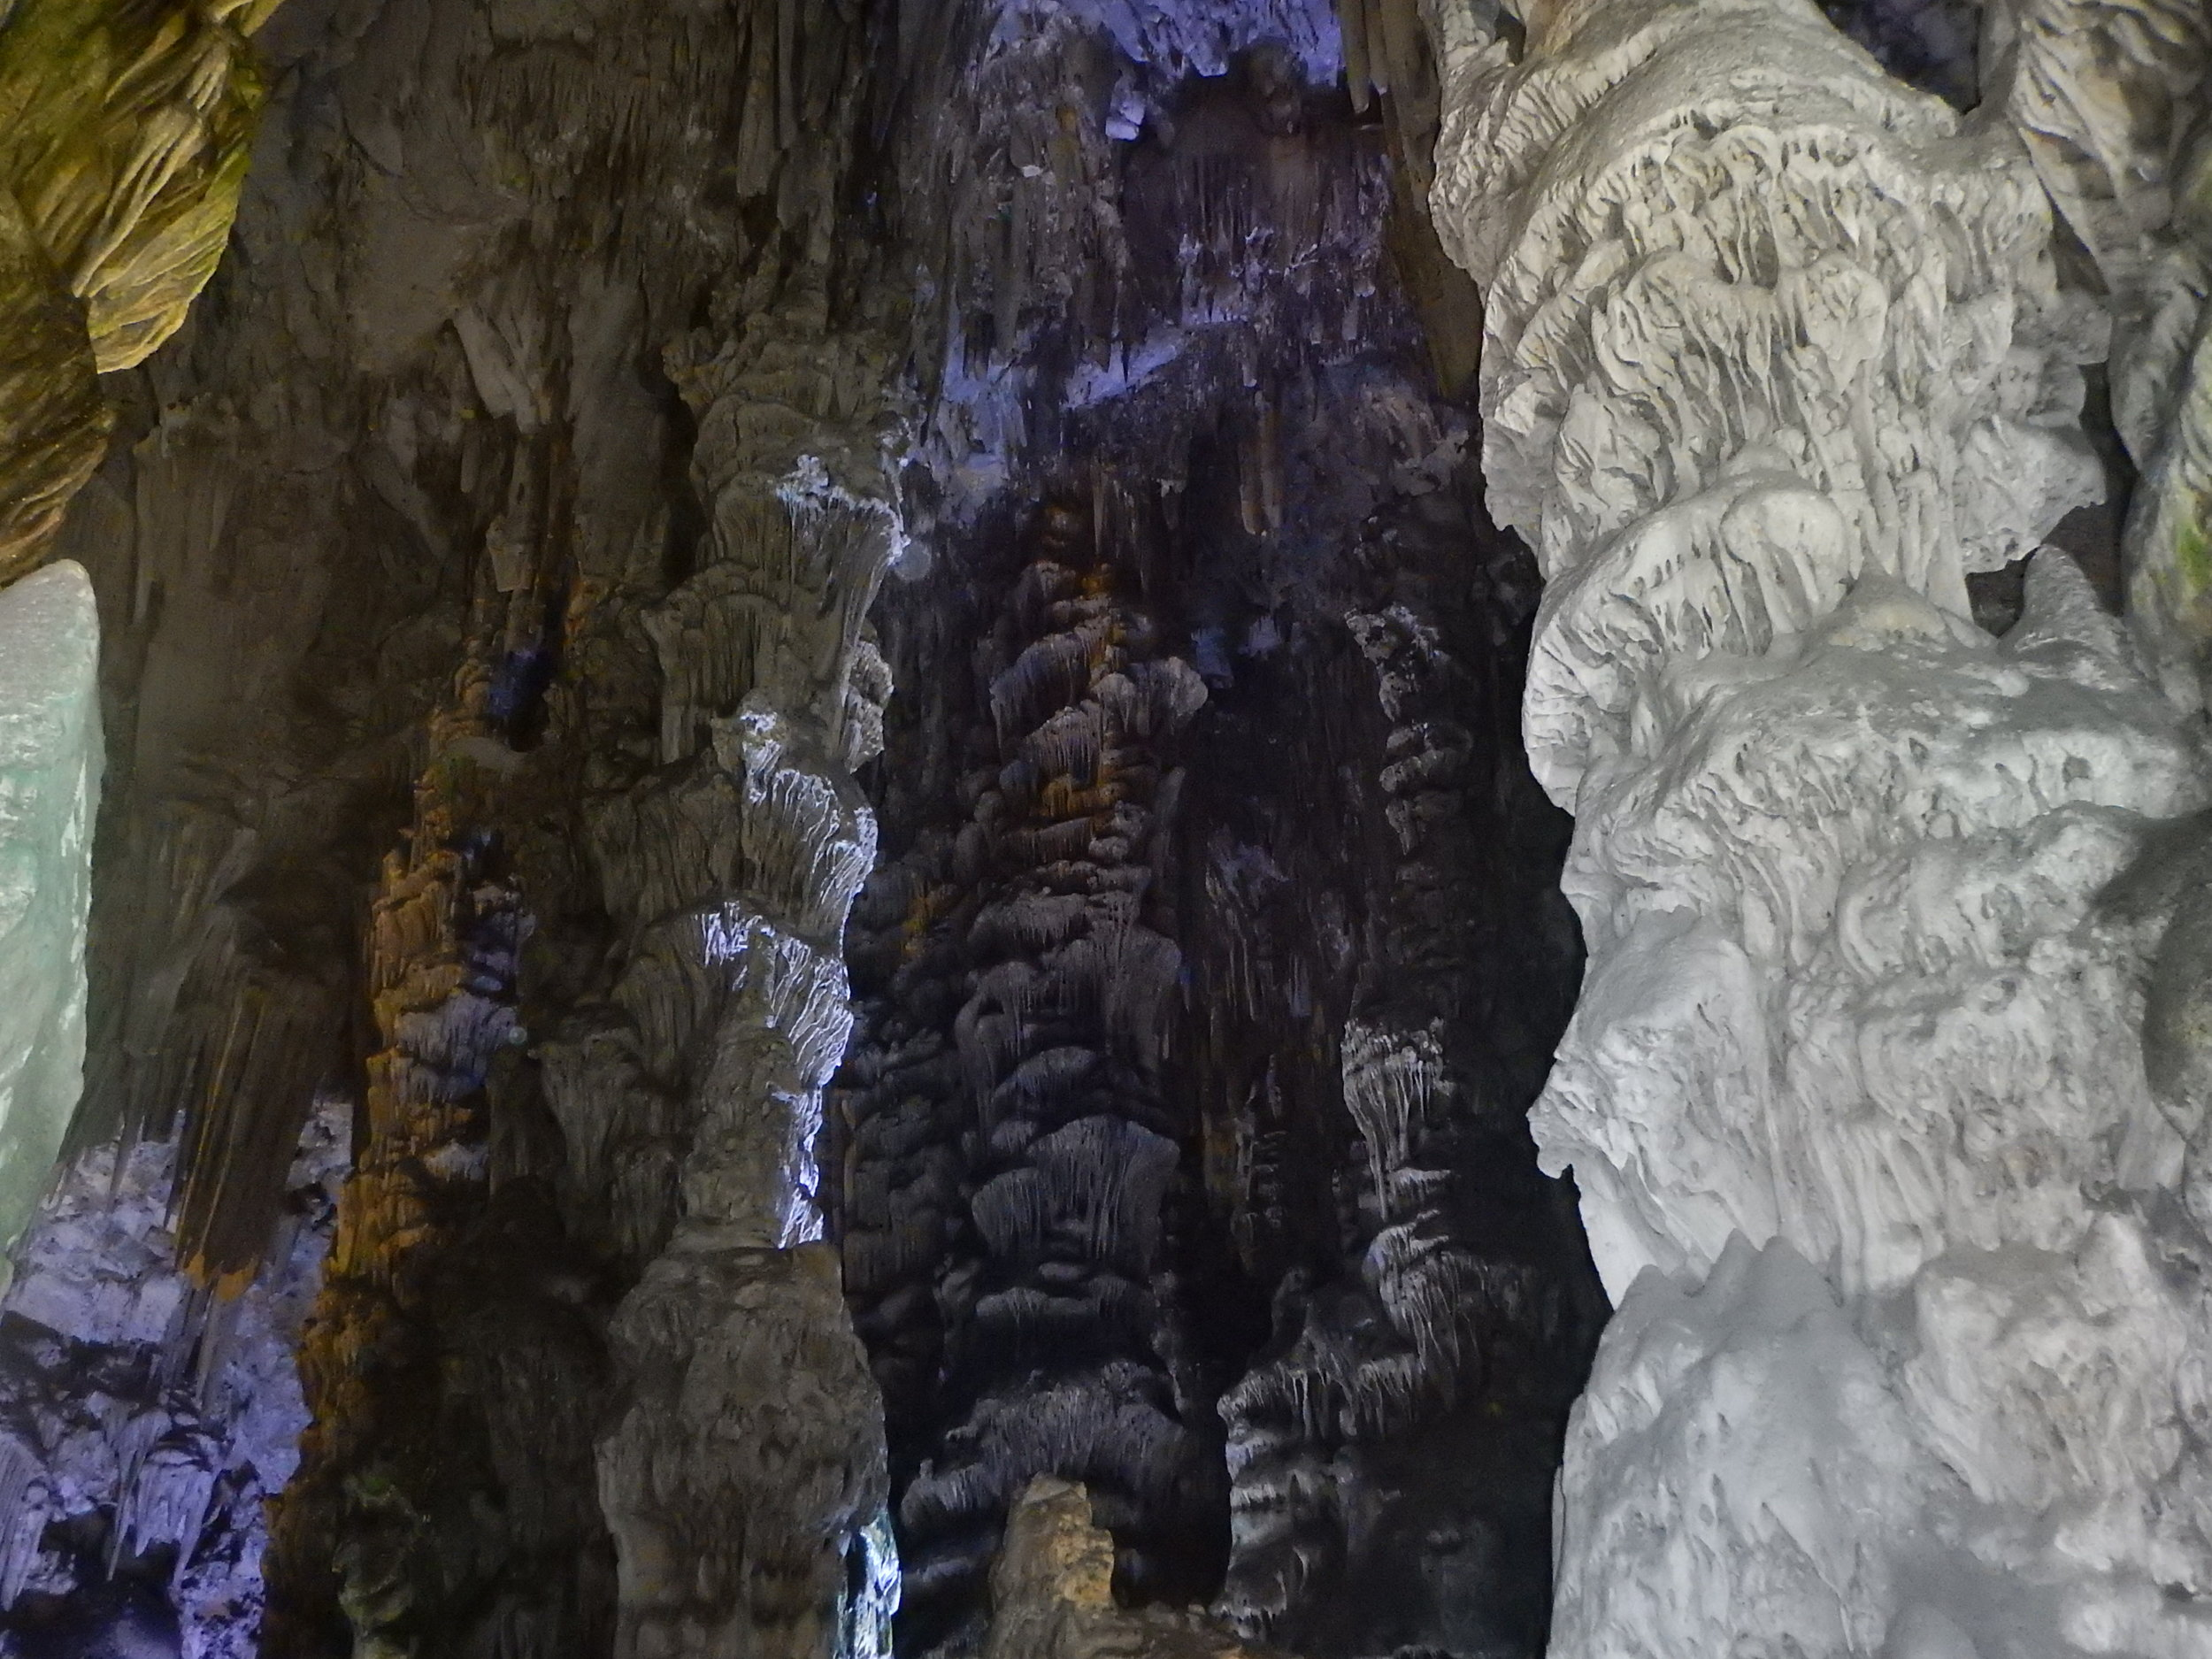 inside St Michaels Cave. No guides here, it would have been great to have had Gail from Mole Creek in this one. Visitors running amok everywhere. No Rose either.